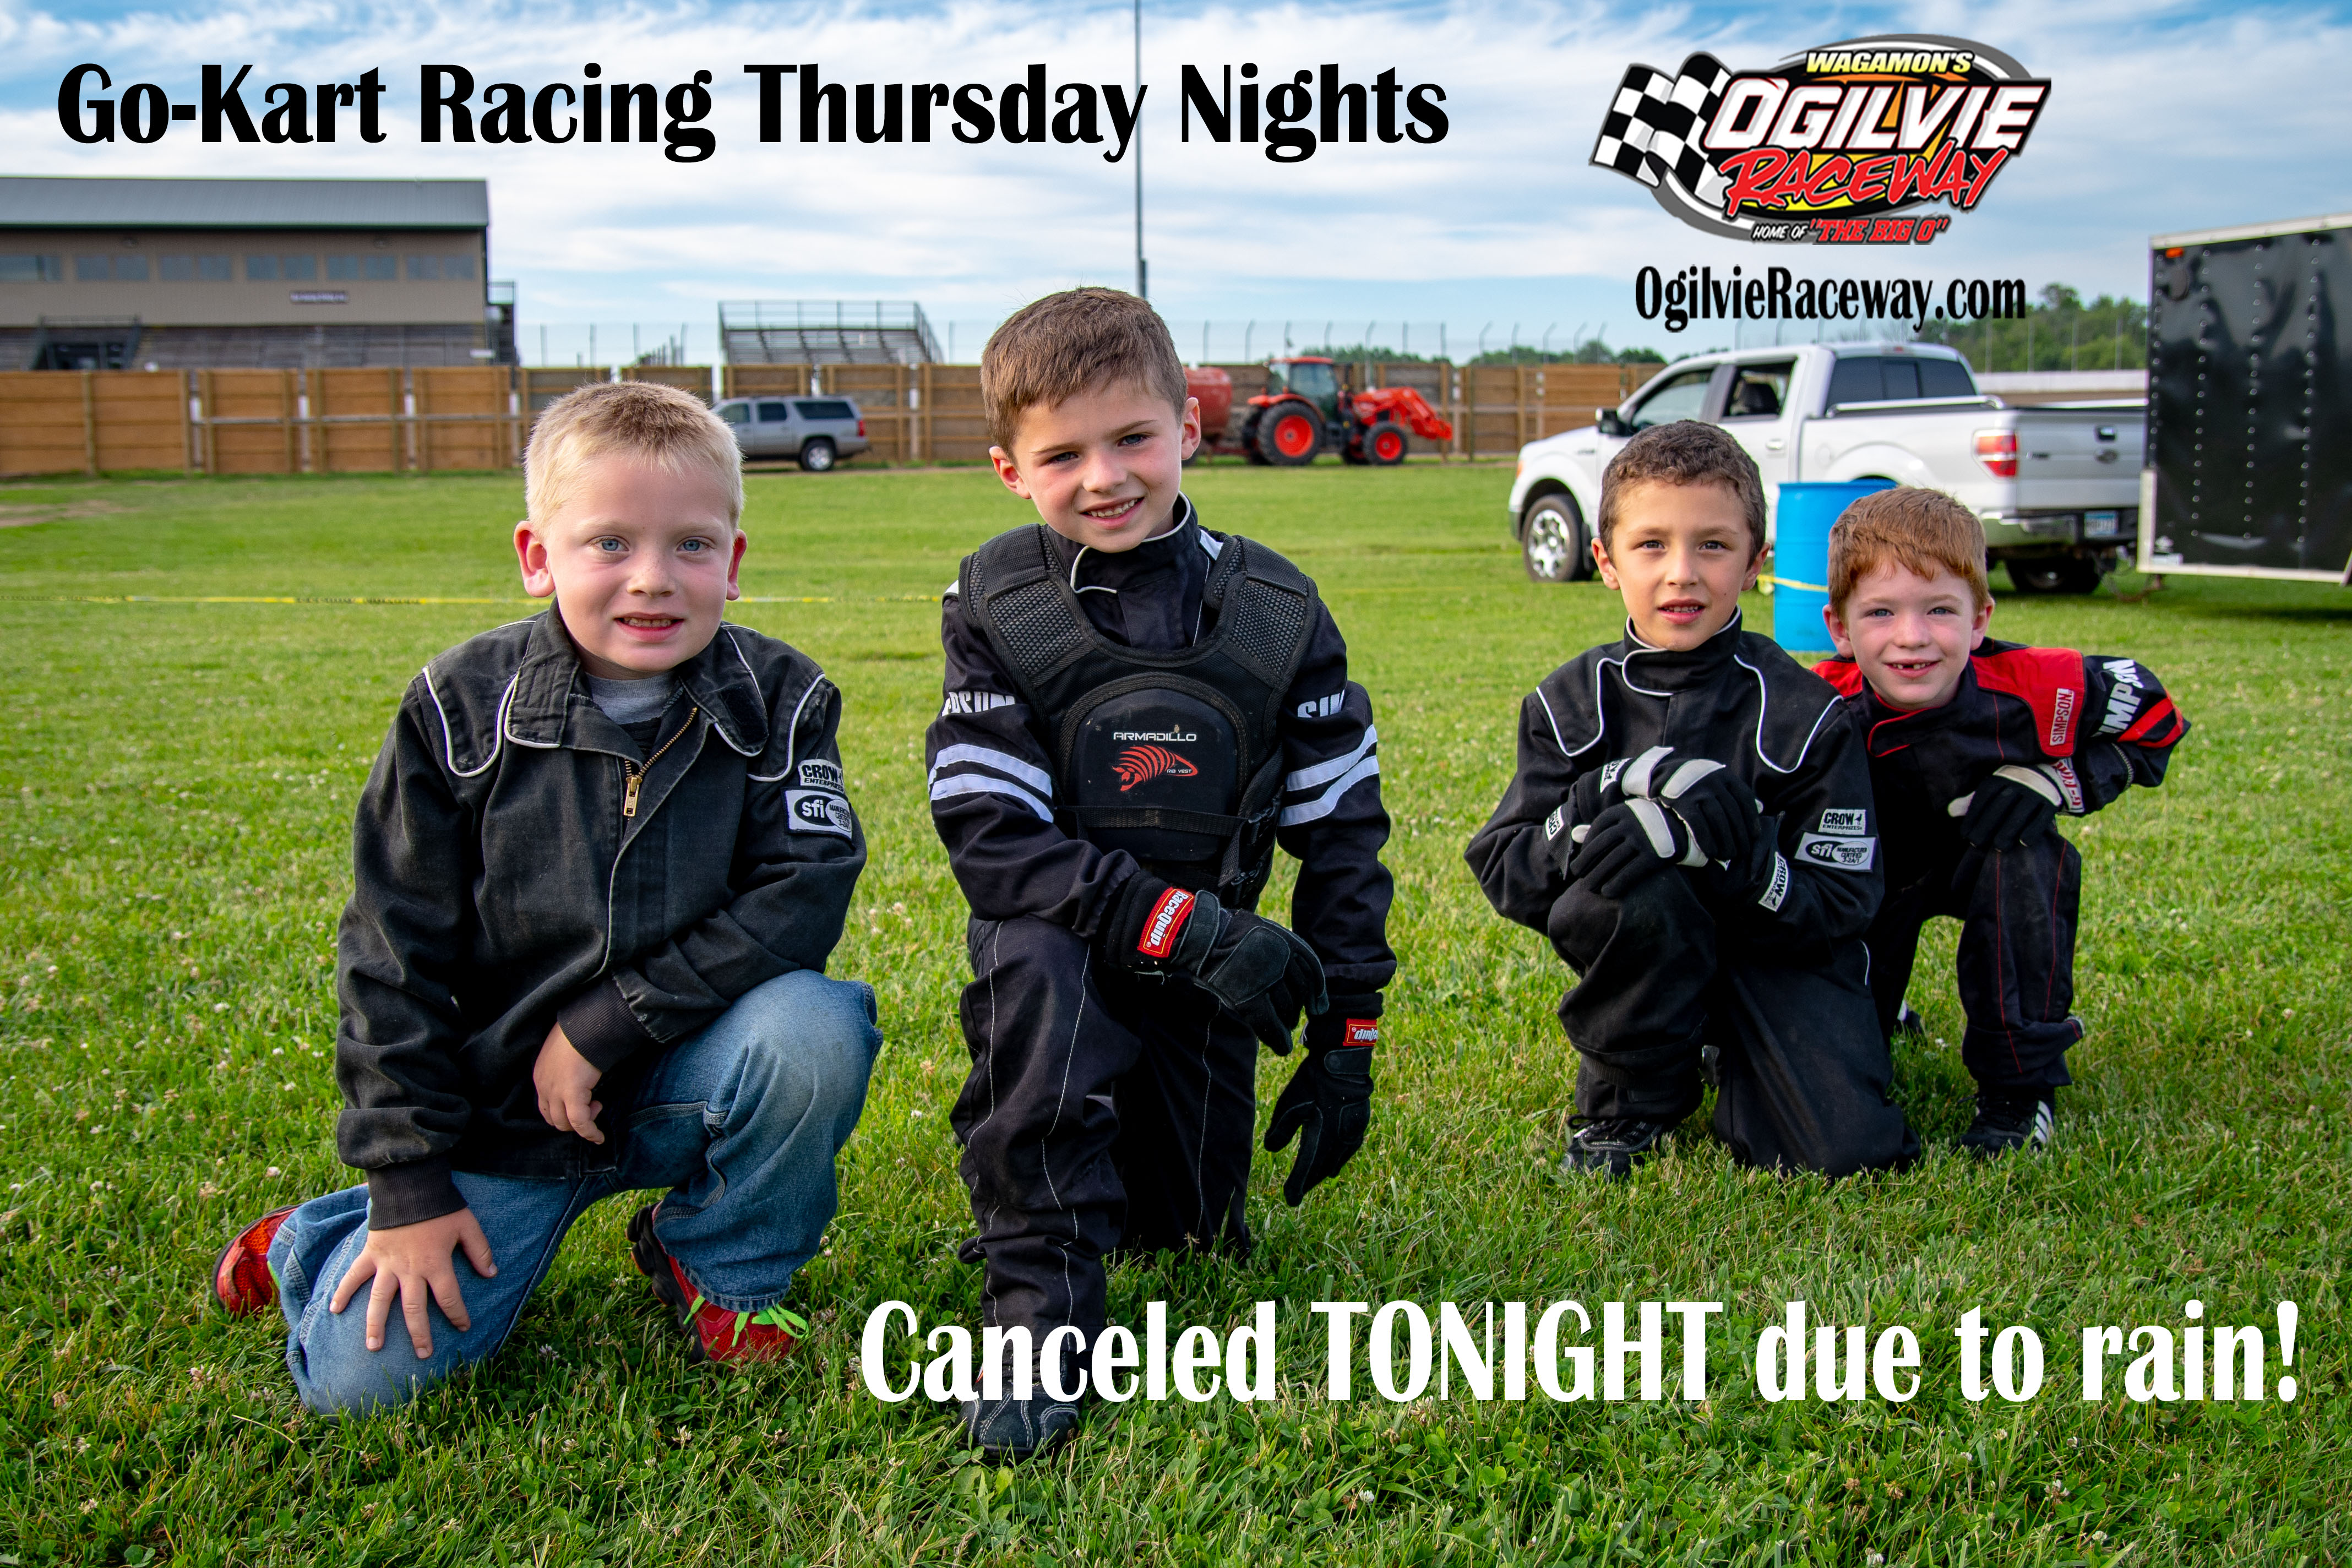 Go-Kart Racing for Thursday, July 19th CANCELED